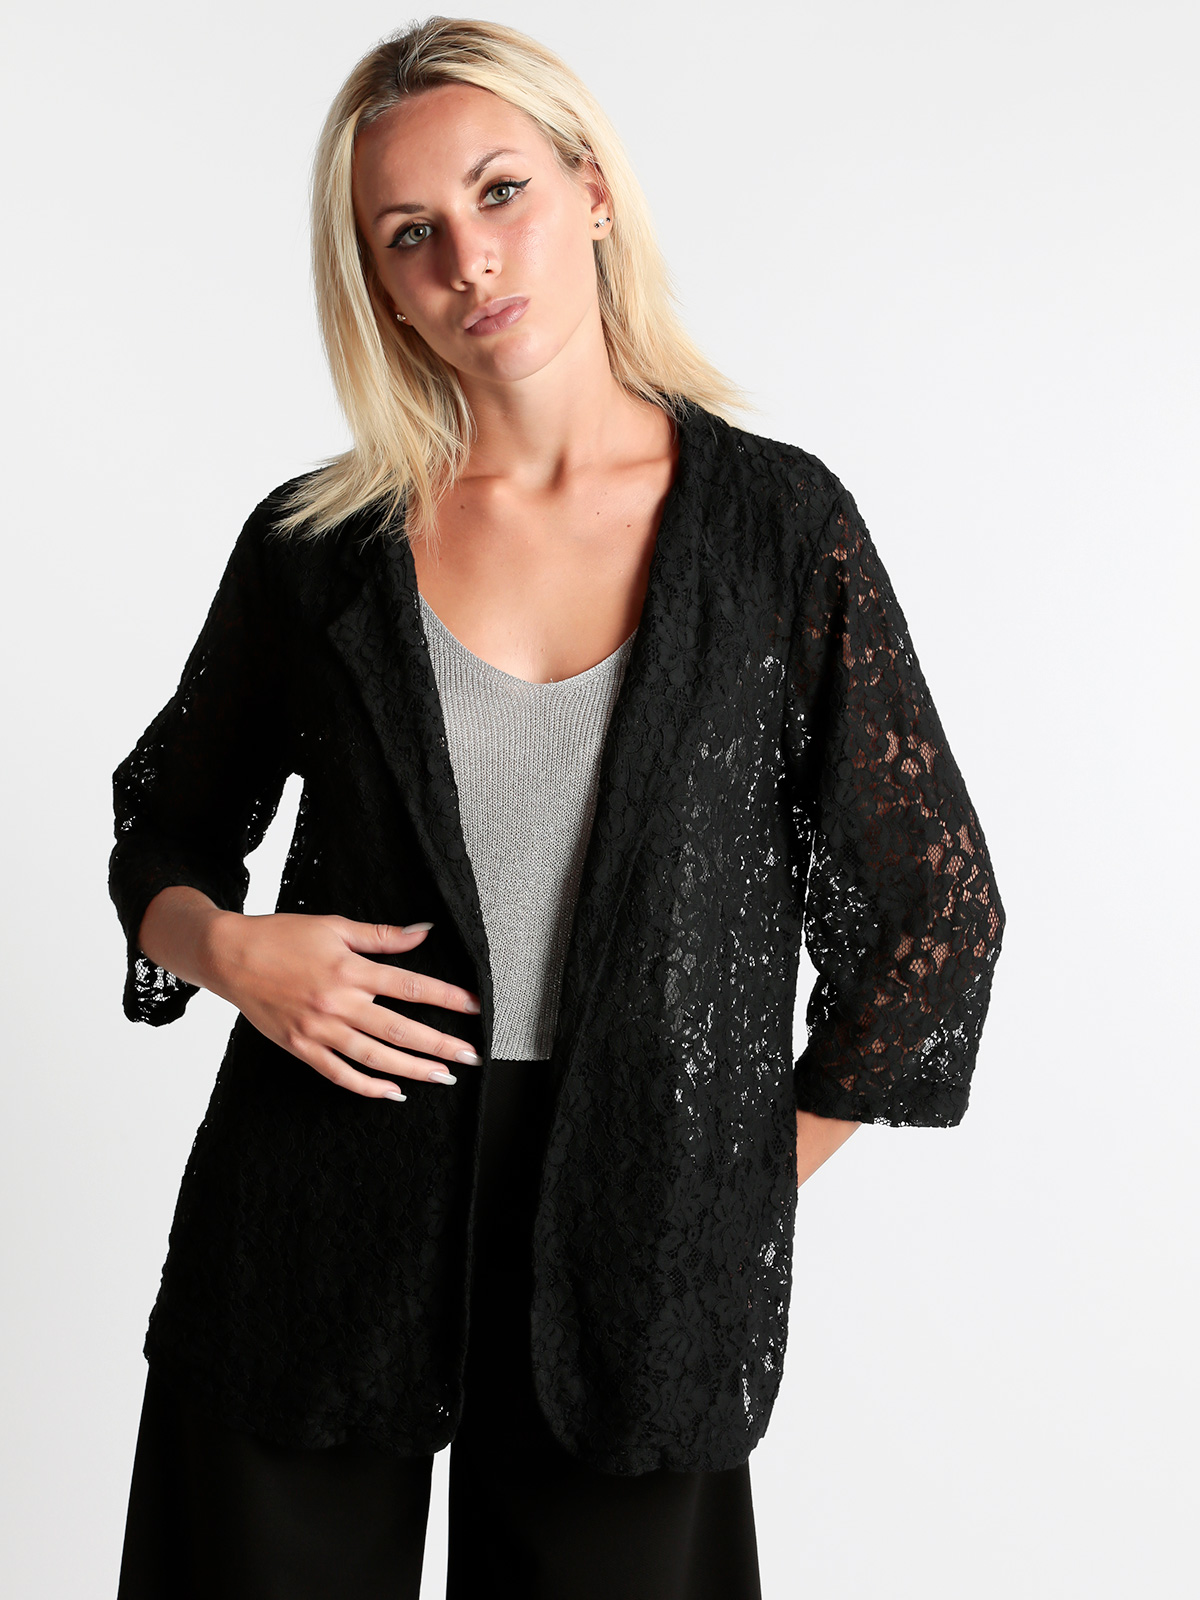 Solada Blazer Lace With Sleeves 3/4